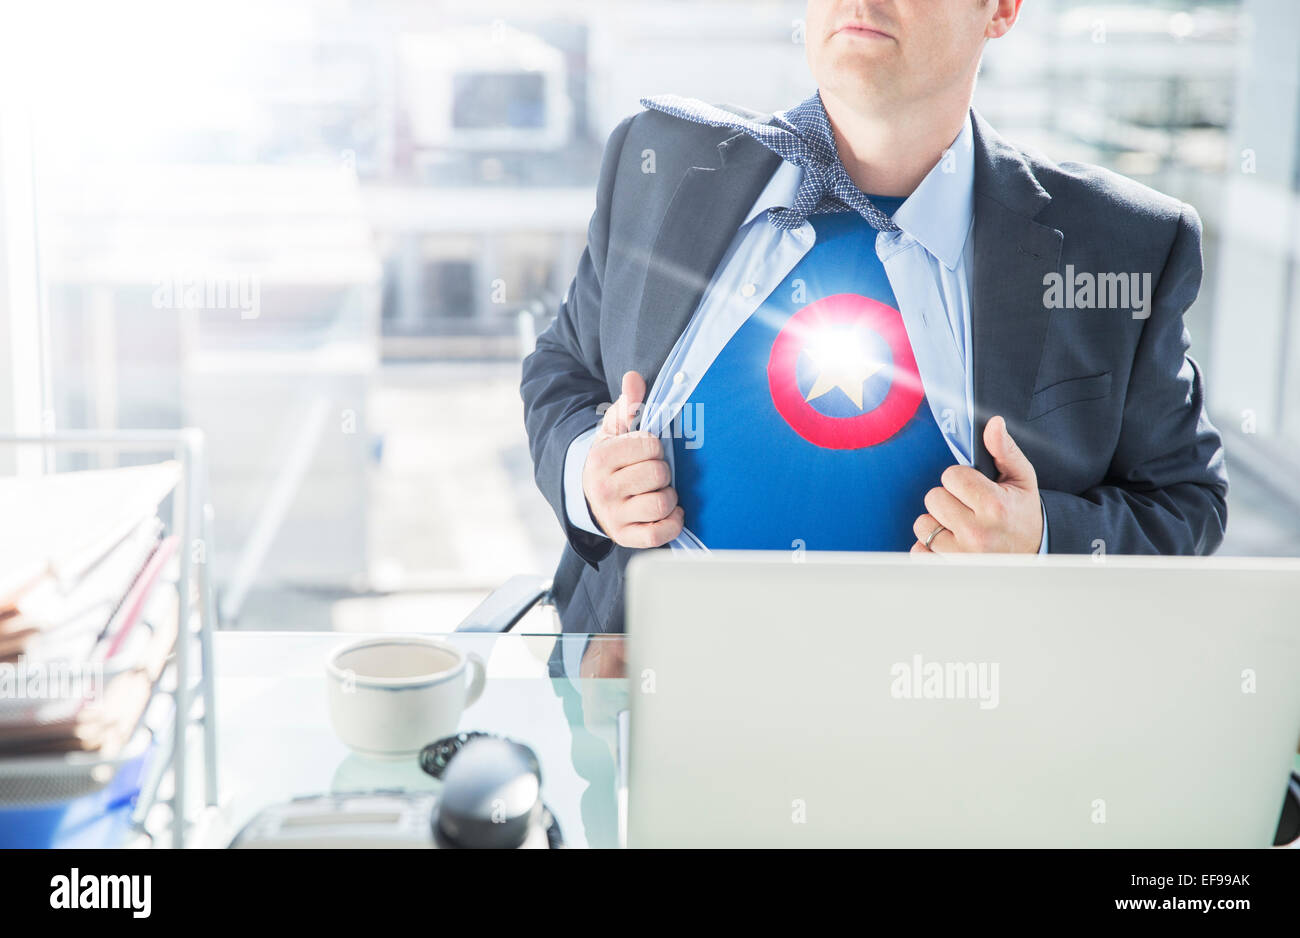 Businessman opening shirt to reveal superhero costume - Stock Image